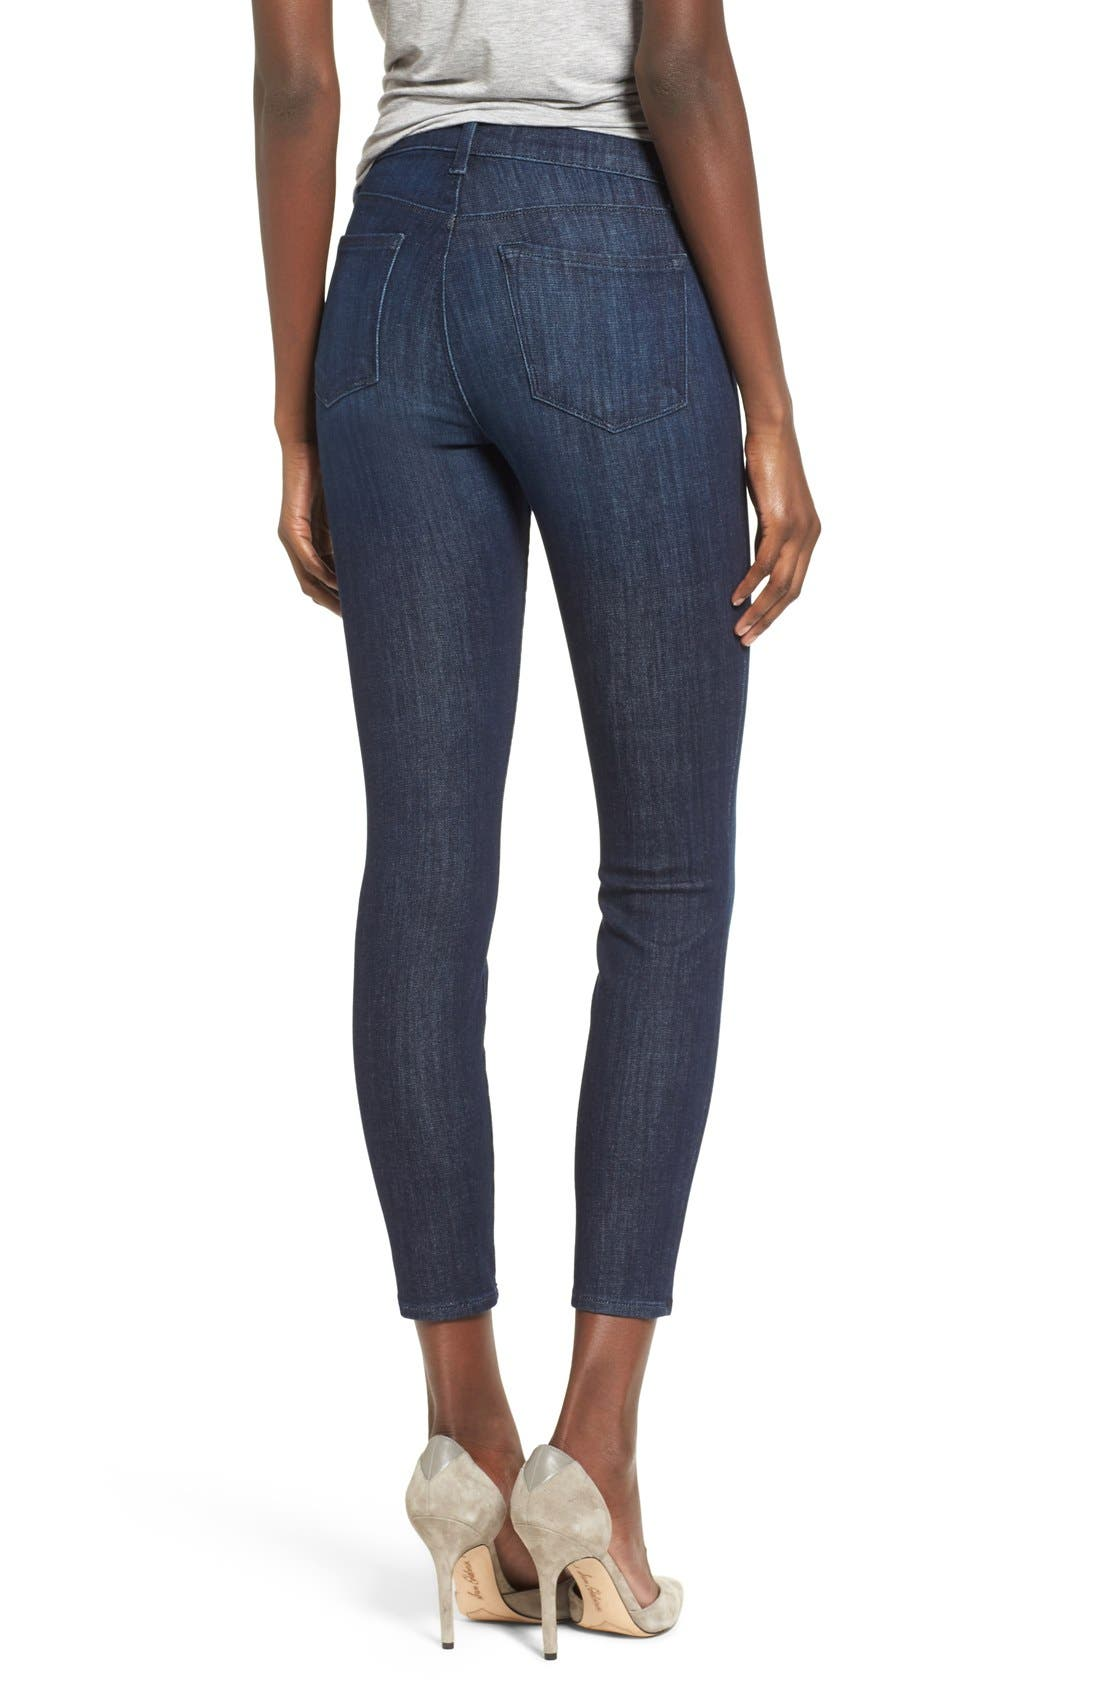 J BRAND, Alana Ripped High Rise Crop Skinny Jeans, Alternate thumbnail 5, color, 408